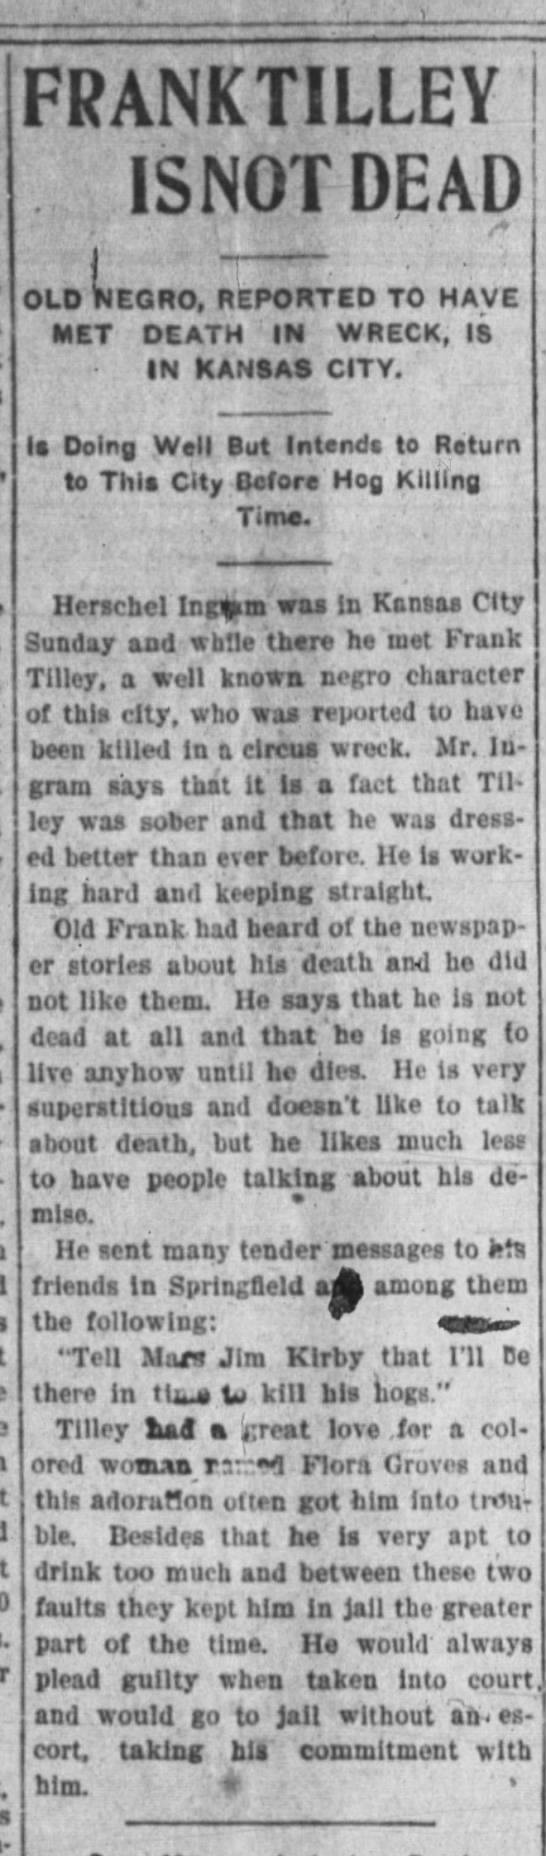 Frank not dead - FRANKTILLEY . IS NOT DEAD OLD iiEGRO, REPORTED...